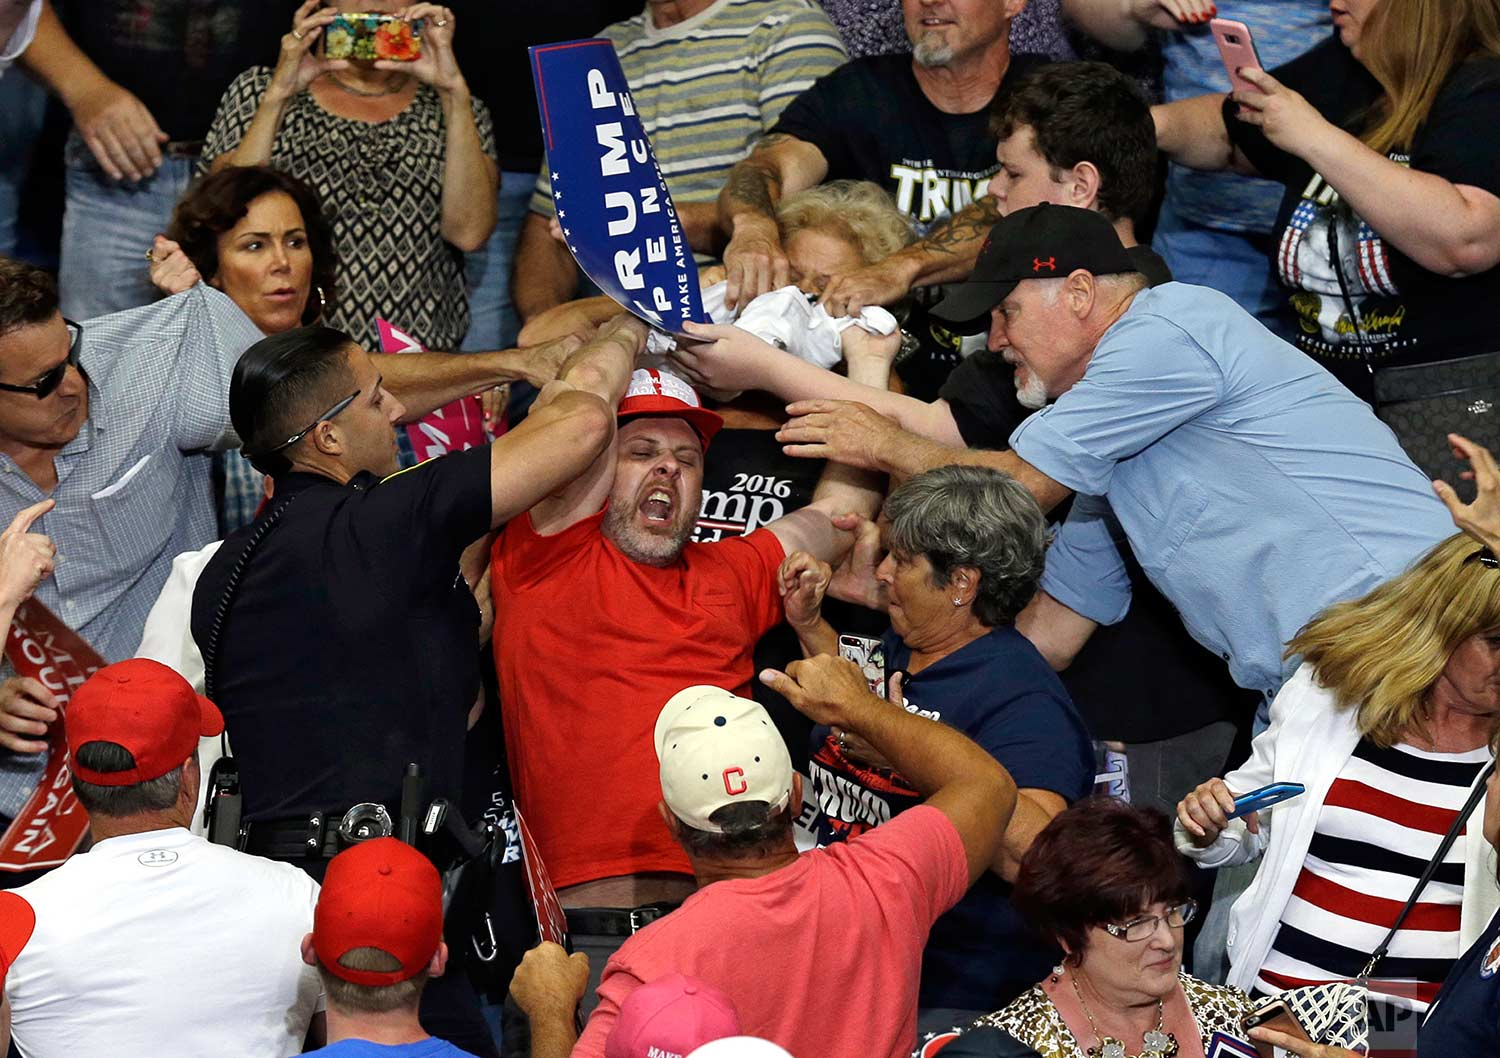 A protester is escorted out of the Covelli Centre during a rally as President Donald Trump speaks, Tuesday, July 25, 2017, in Youngstown, Ohio. (AP Photo/Tony Dejak)